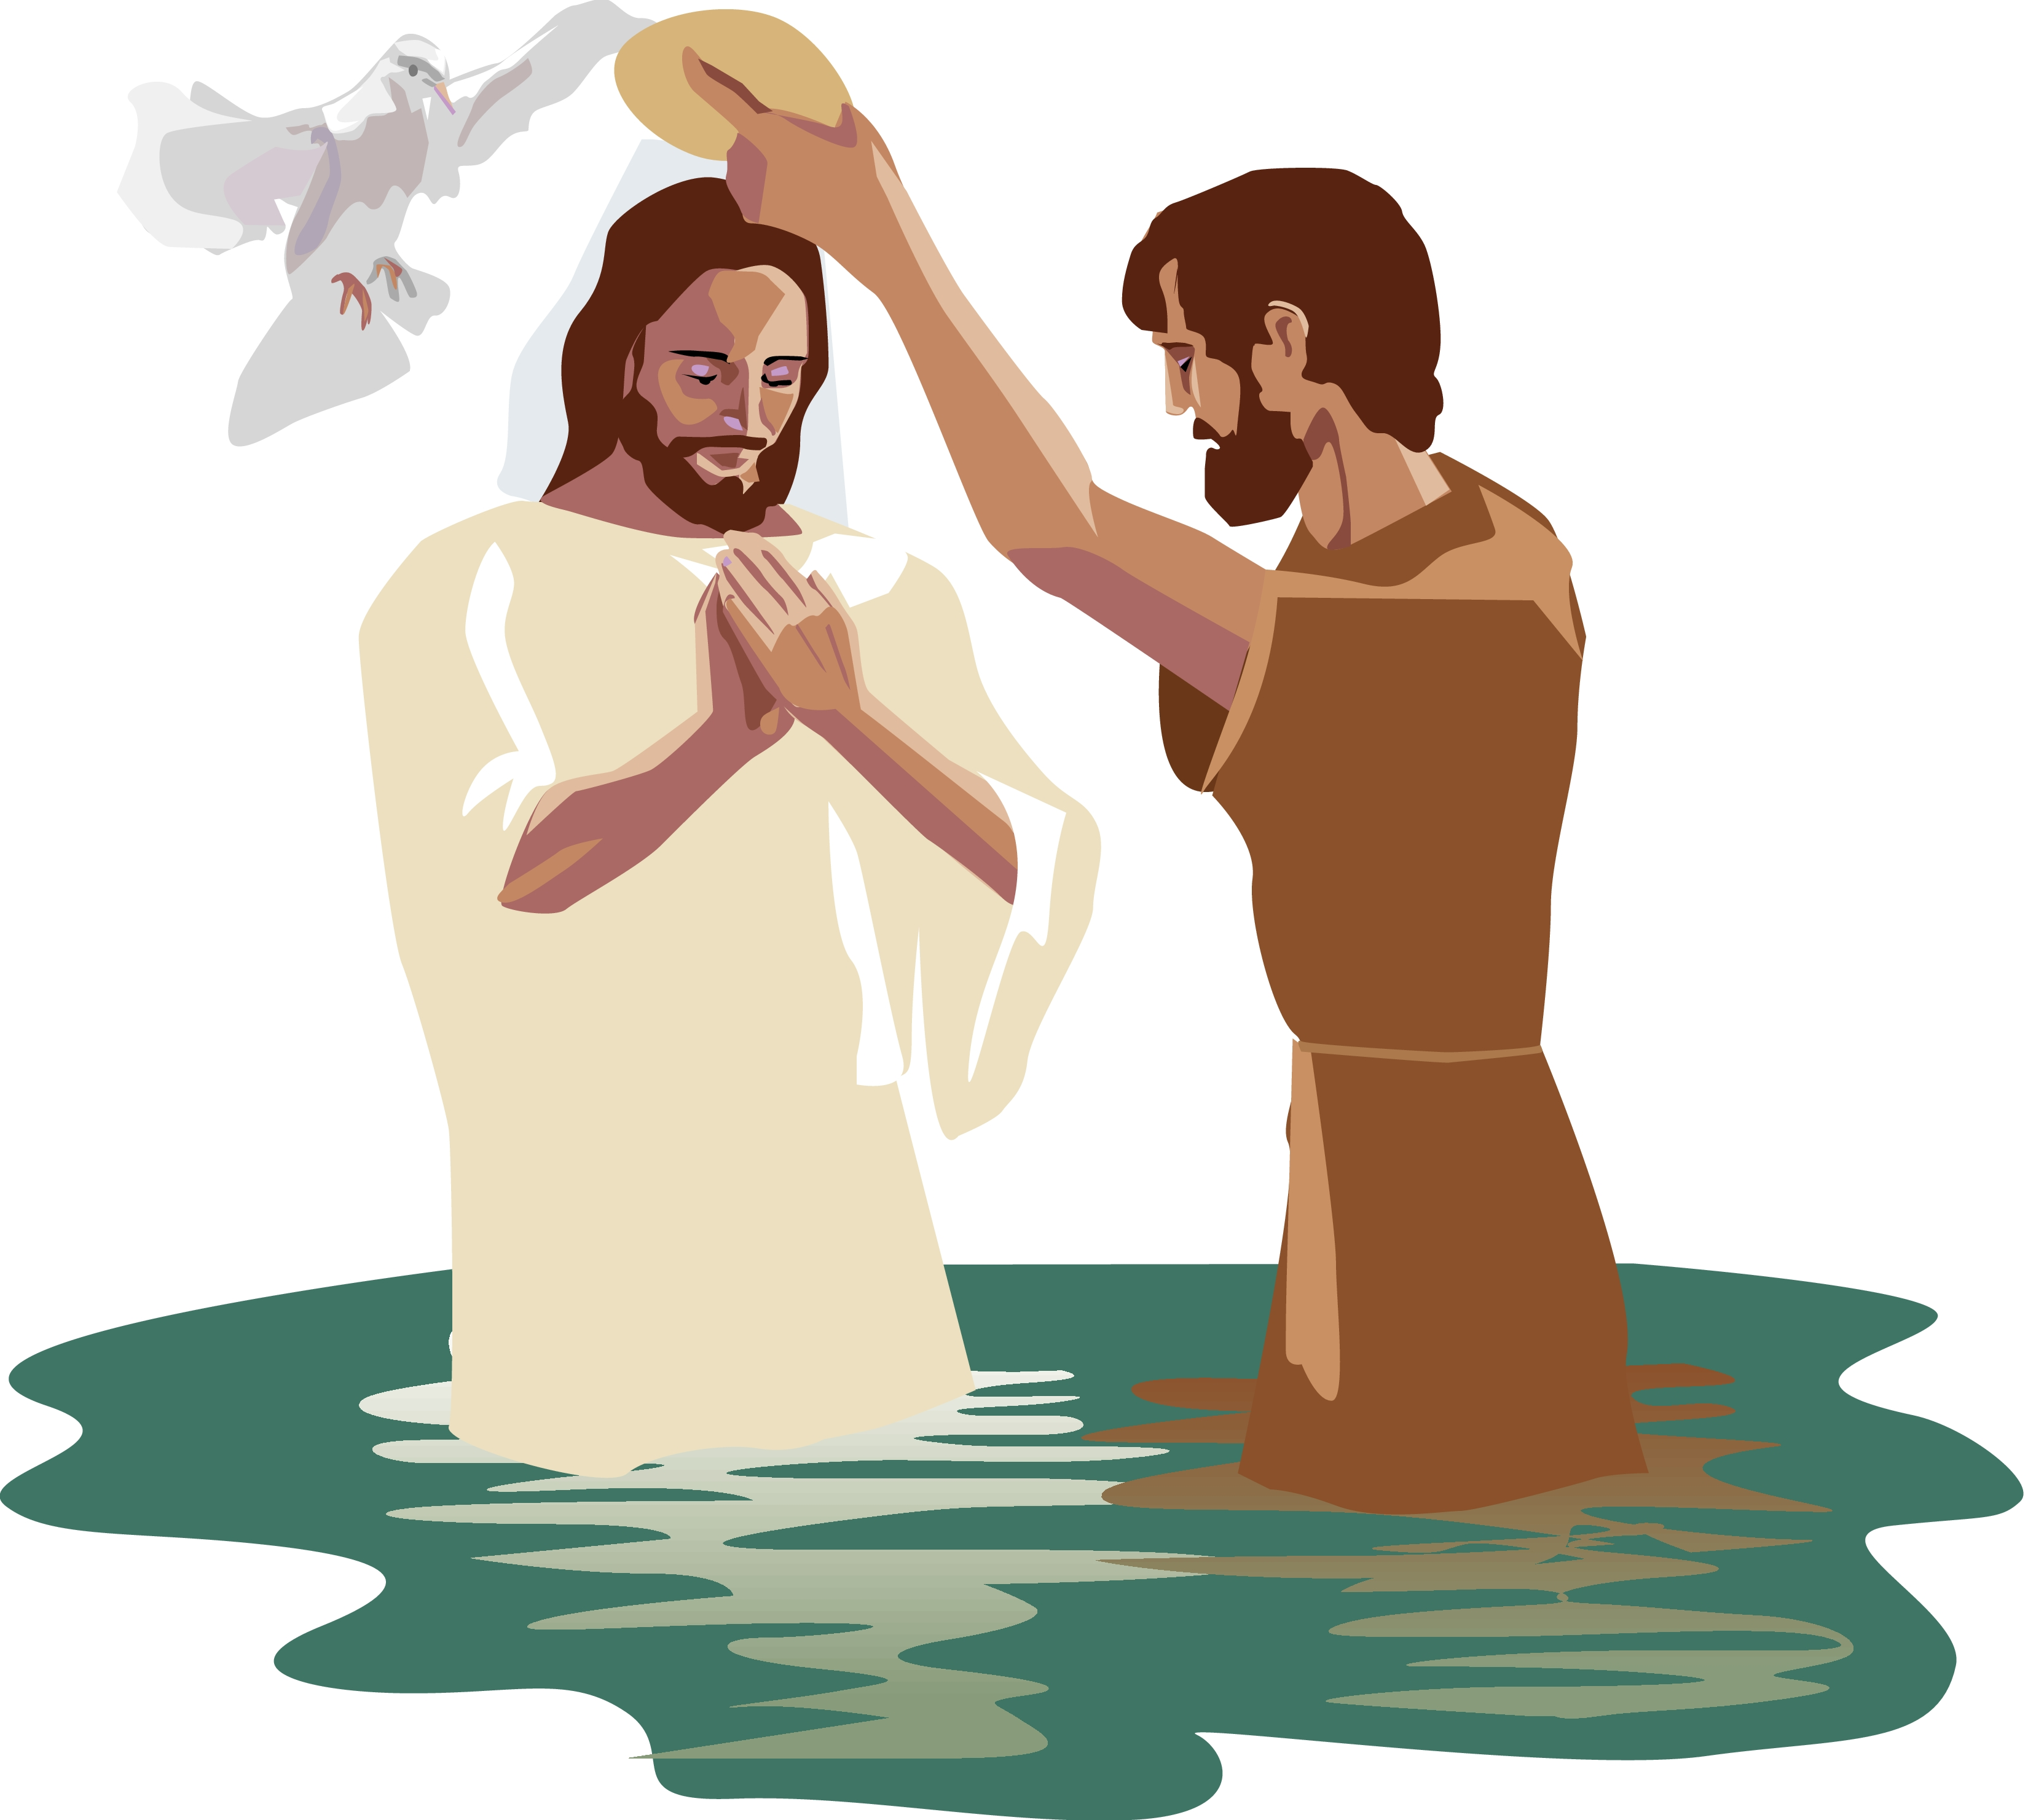 Baptism of christ clipart image freeuse library Baptism of jesus clipart clipartxtras - ClipartPost image freeuse library